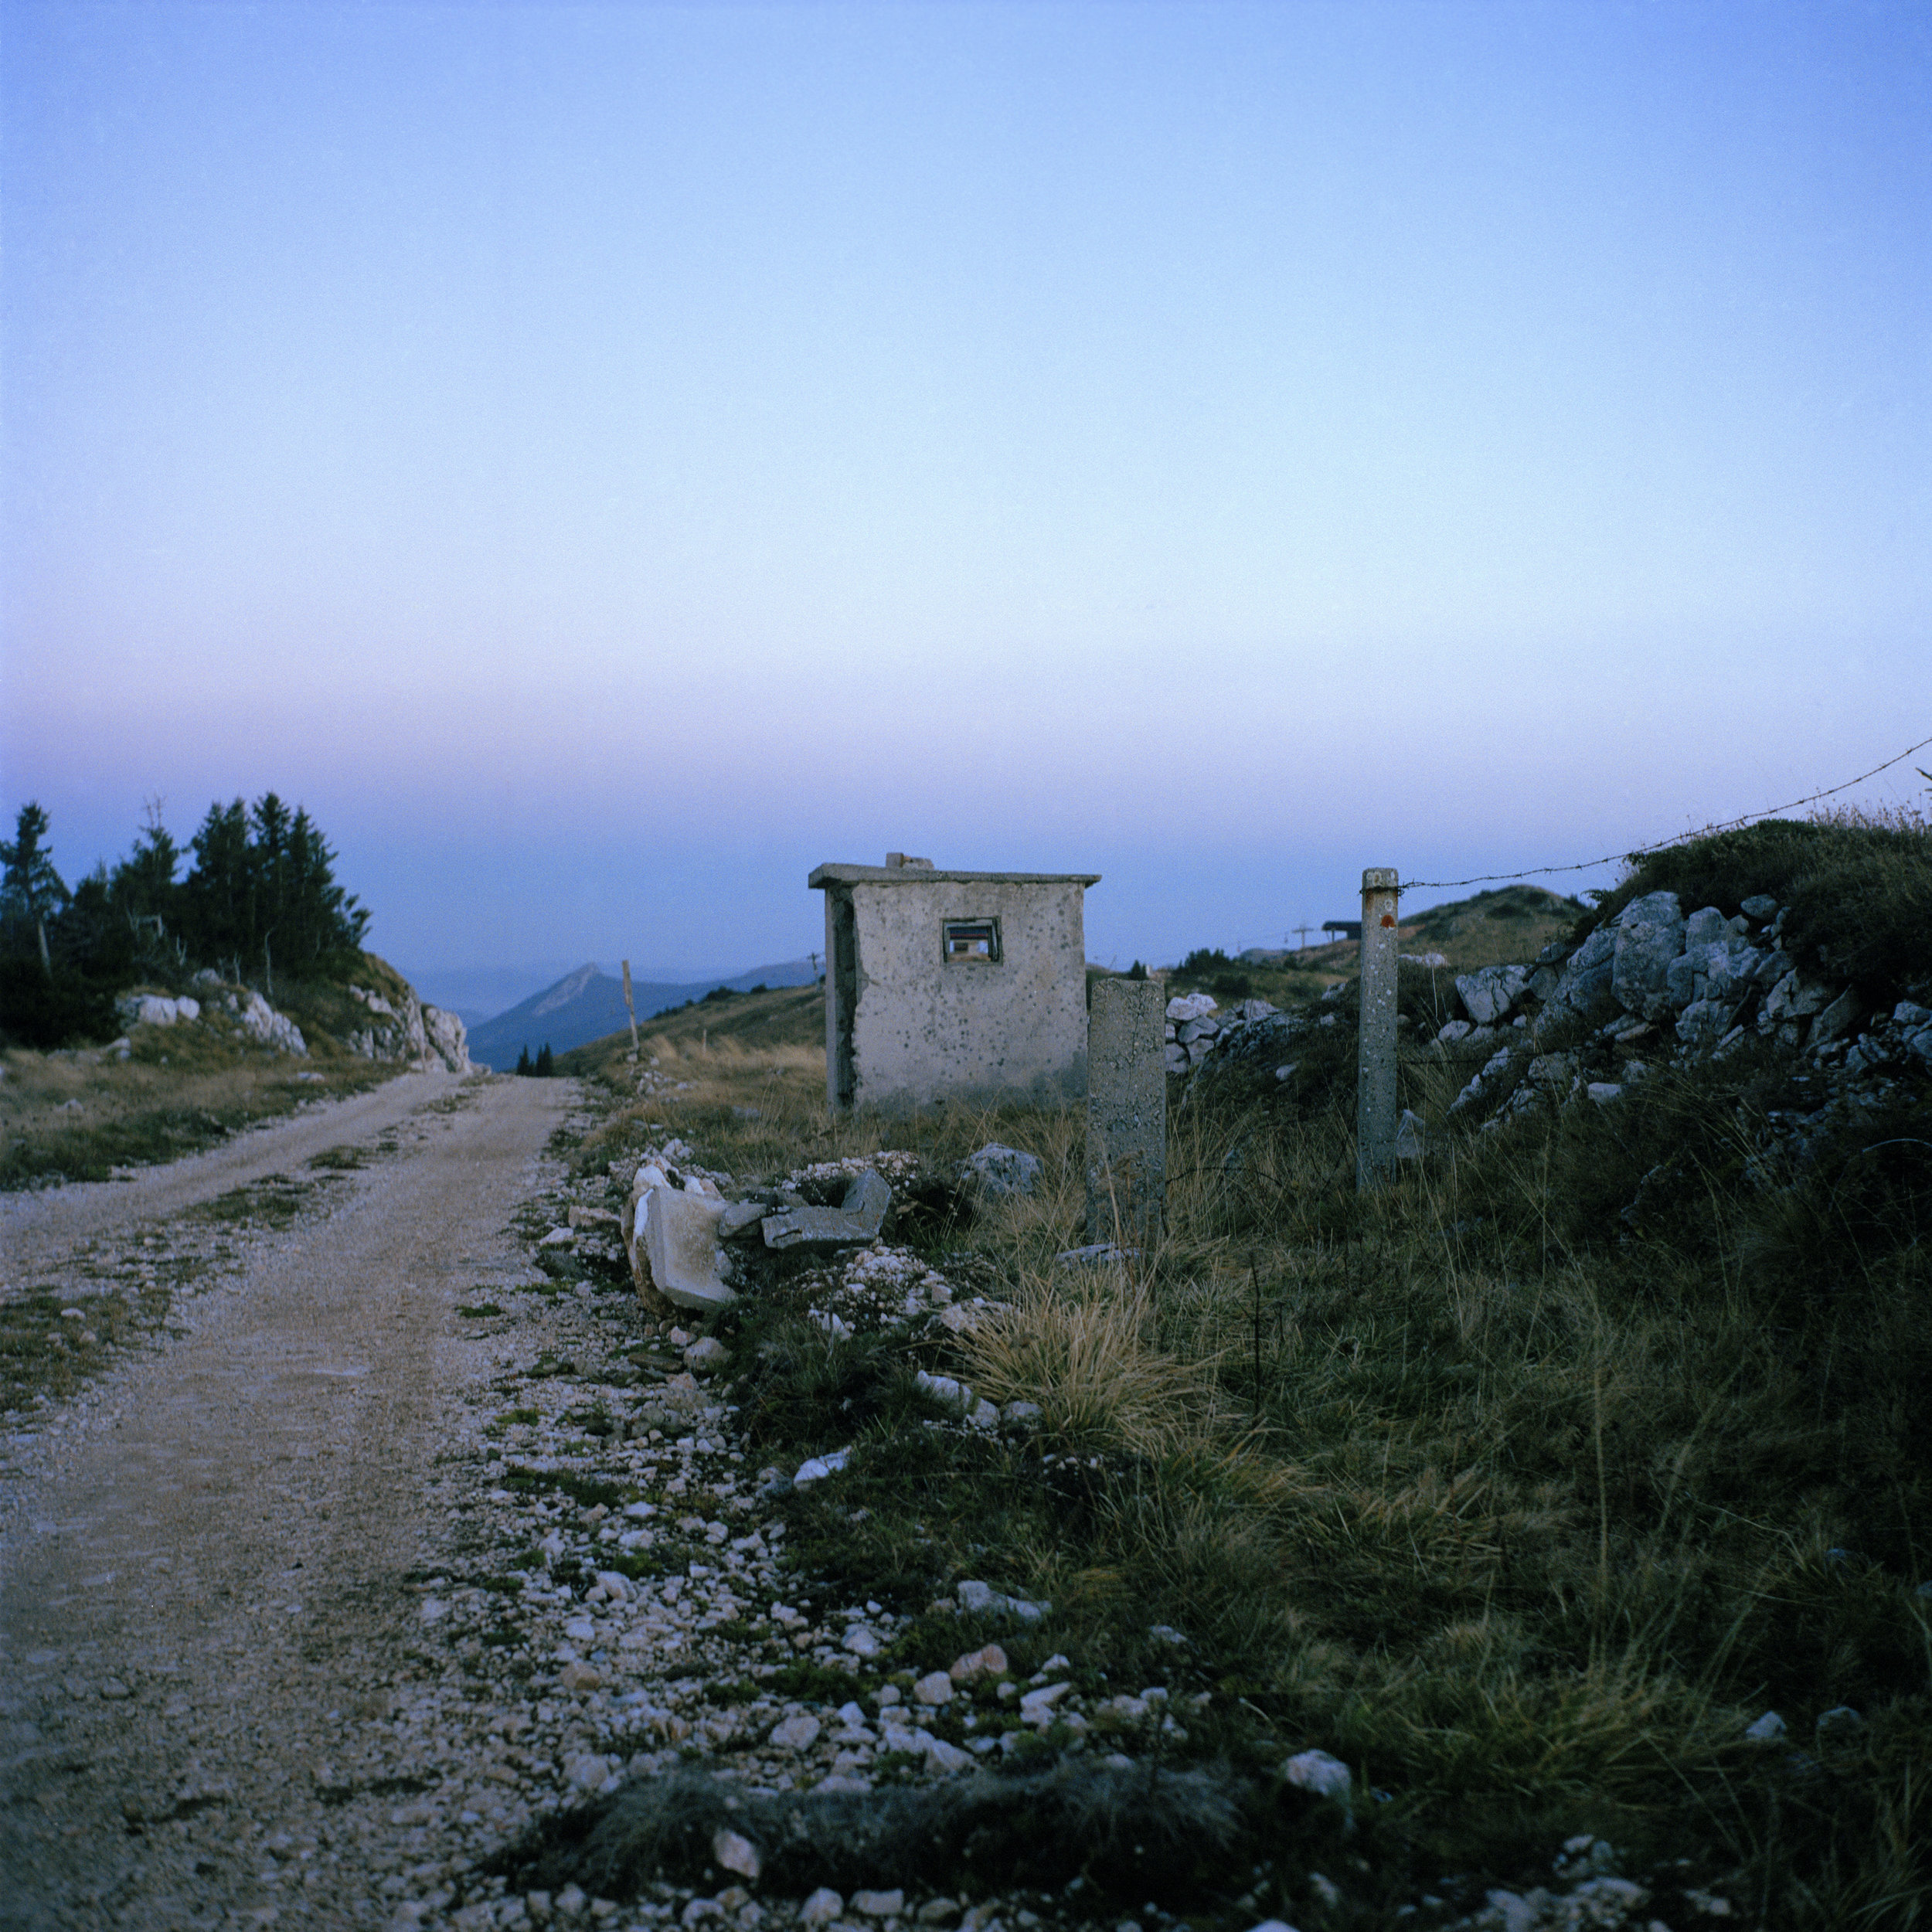 Bosnia and Herzegovina, Pale, October 2010. Mount Jahorina, close to Pale, about 15 km from Sarajevo, the administrative centre of Republika Srpska during the Bosnian War. A destroyed JNA (Yugoslav People's Army) checkpoint, controlled by VRS (Republika Srpska Army) during the war.